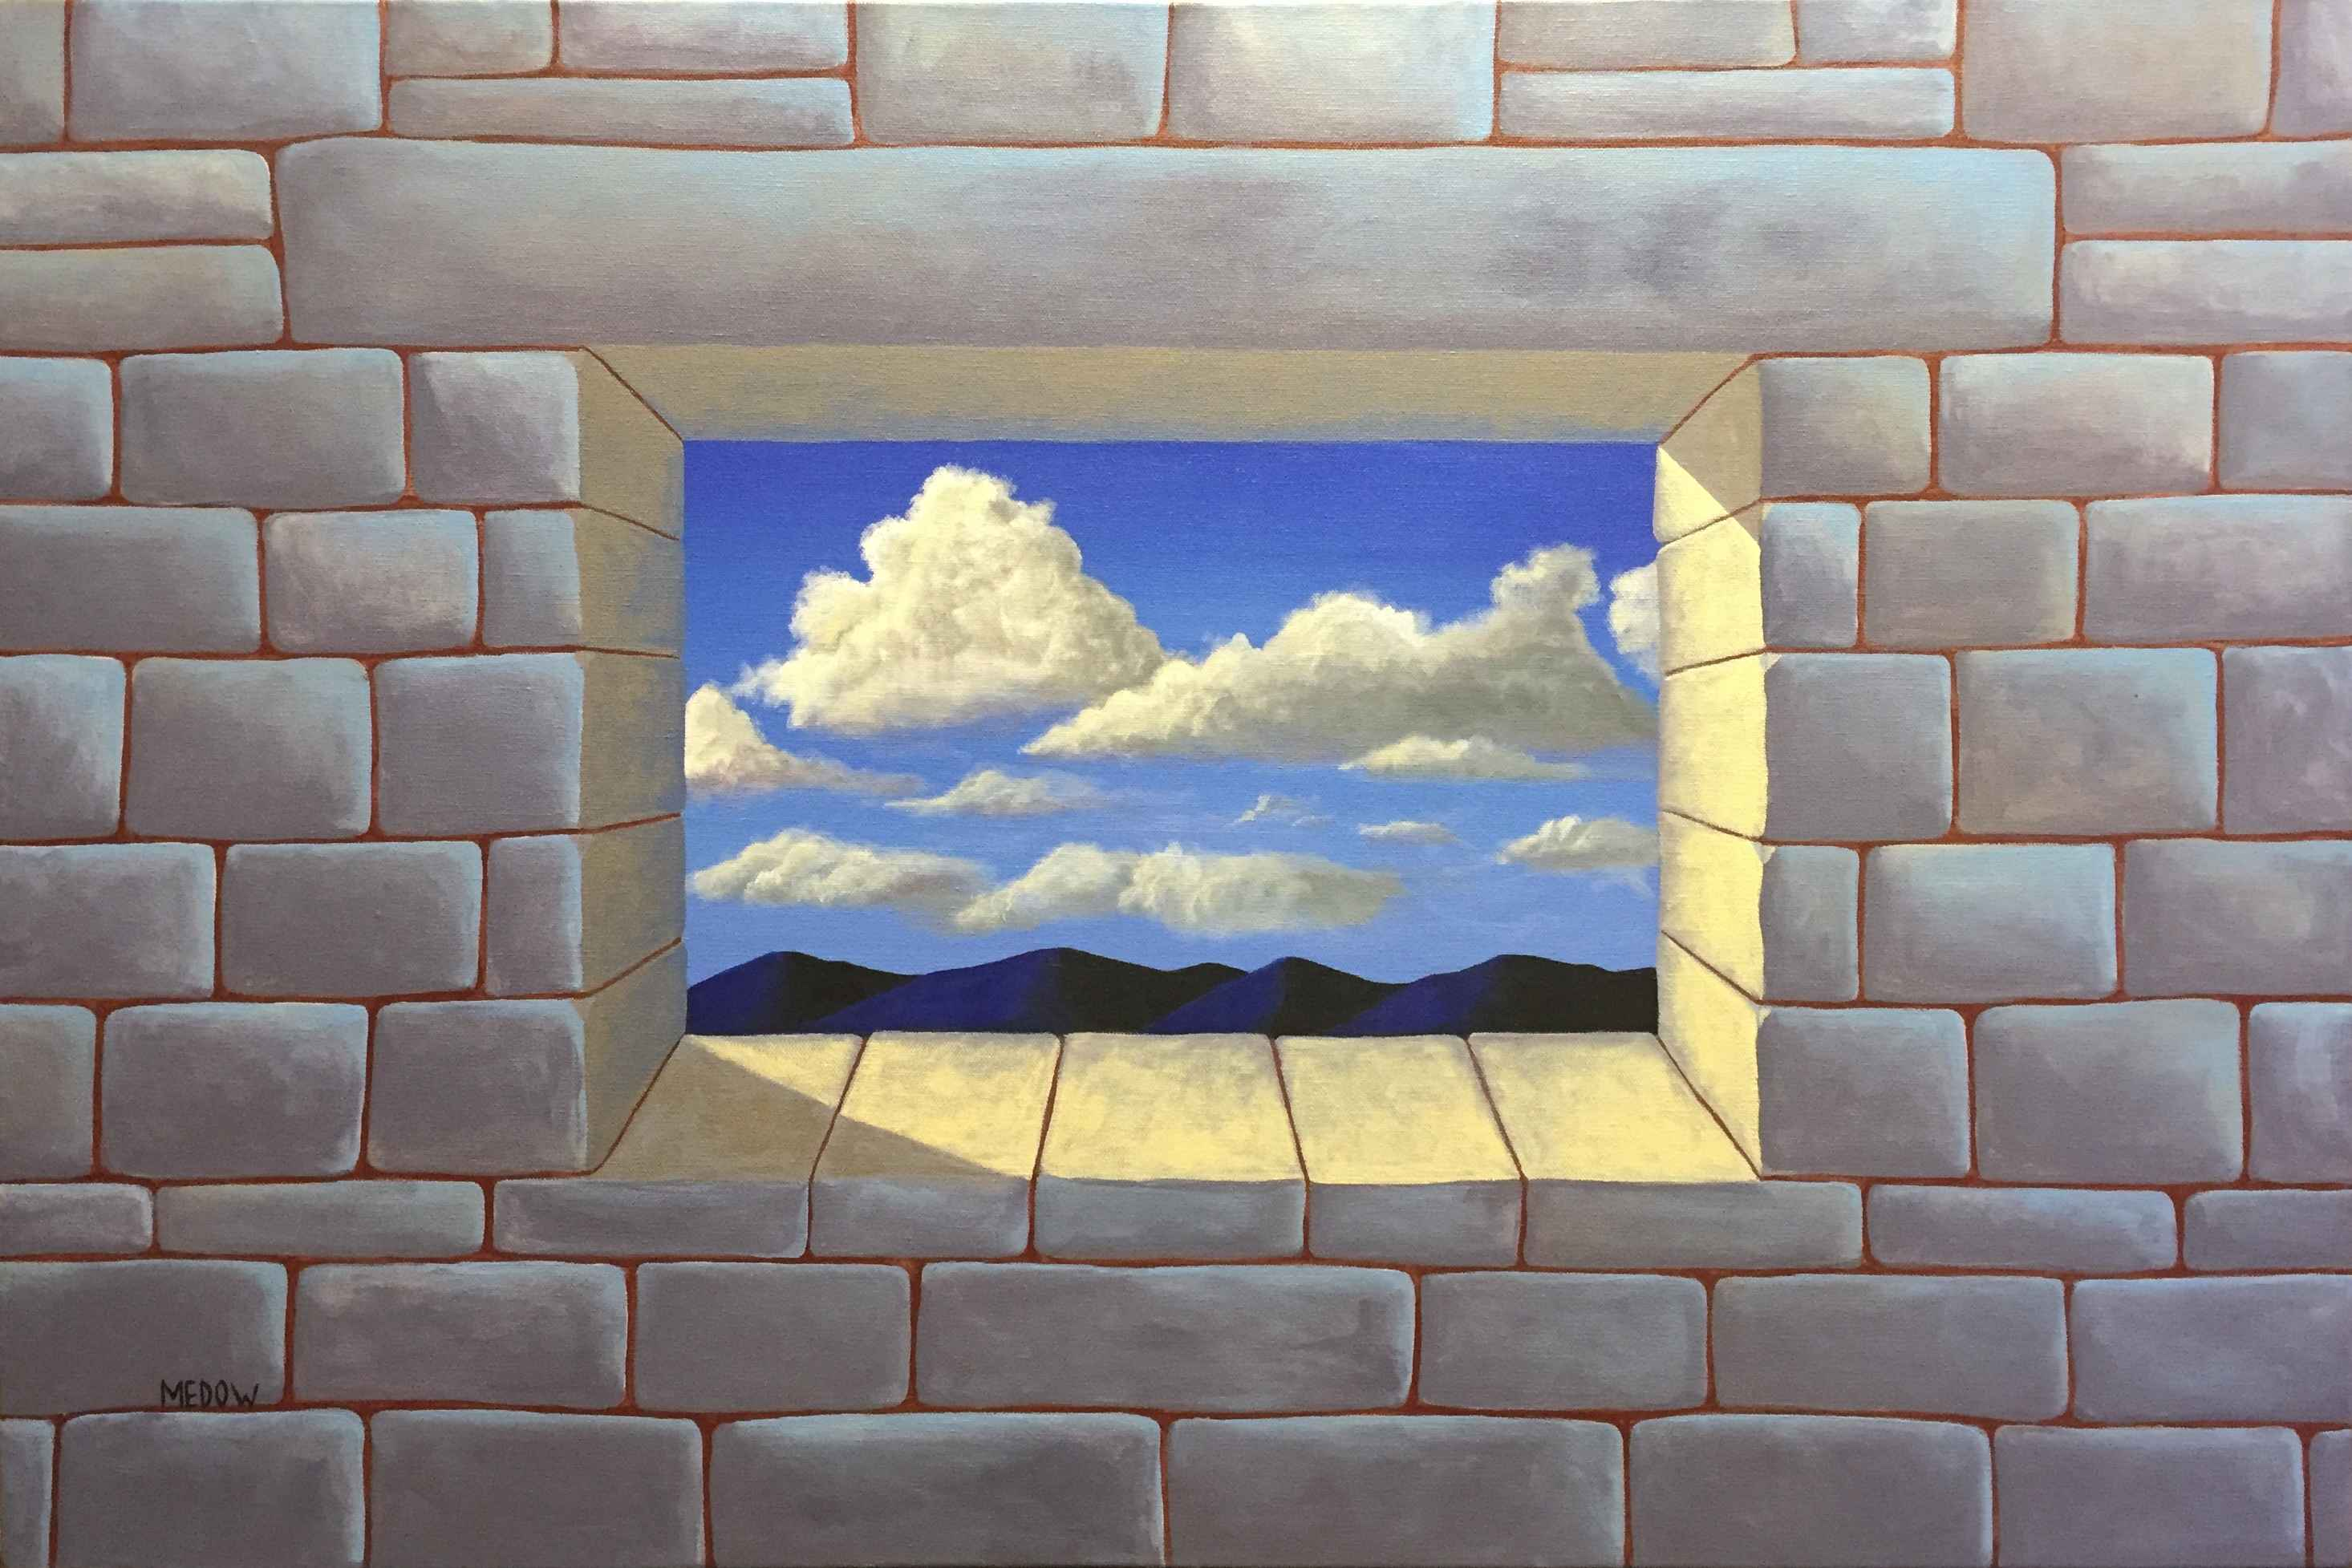 Sky View 1 by  Mike Medow - Masterpiece Online